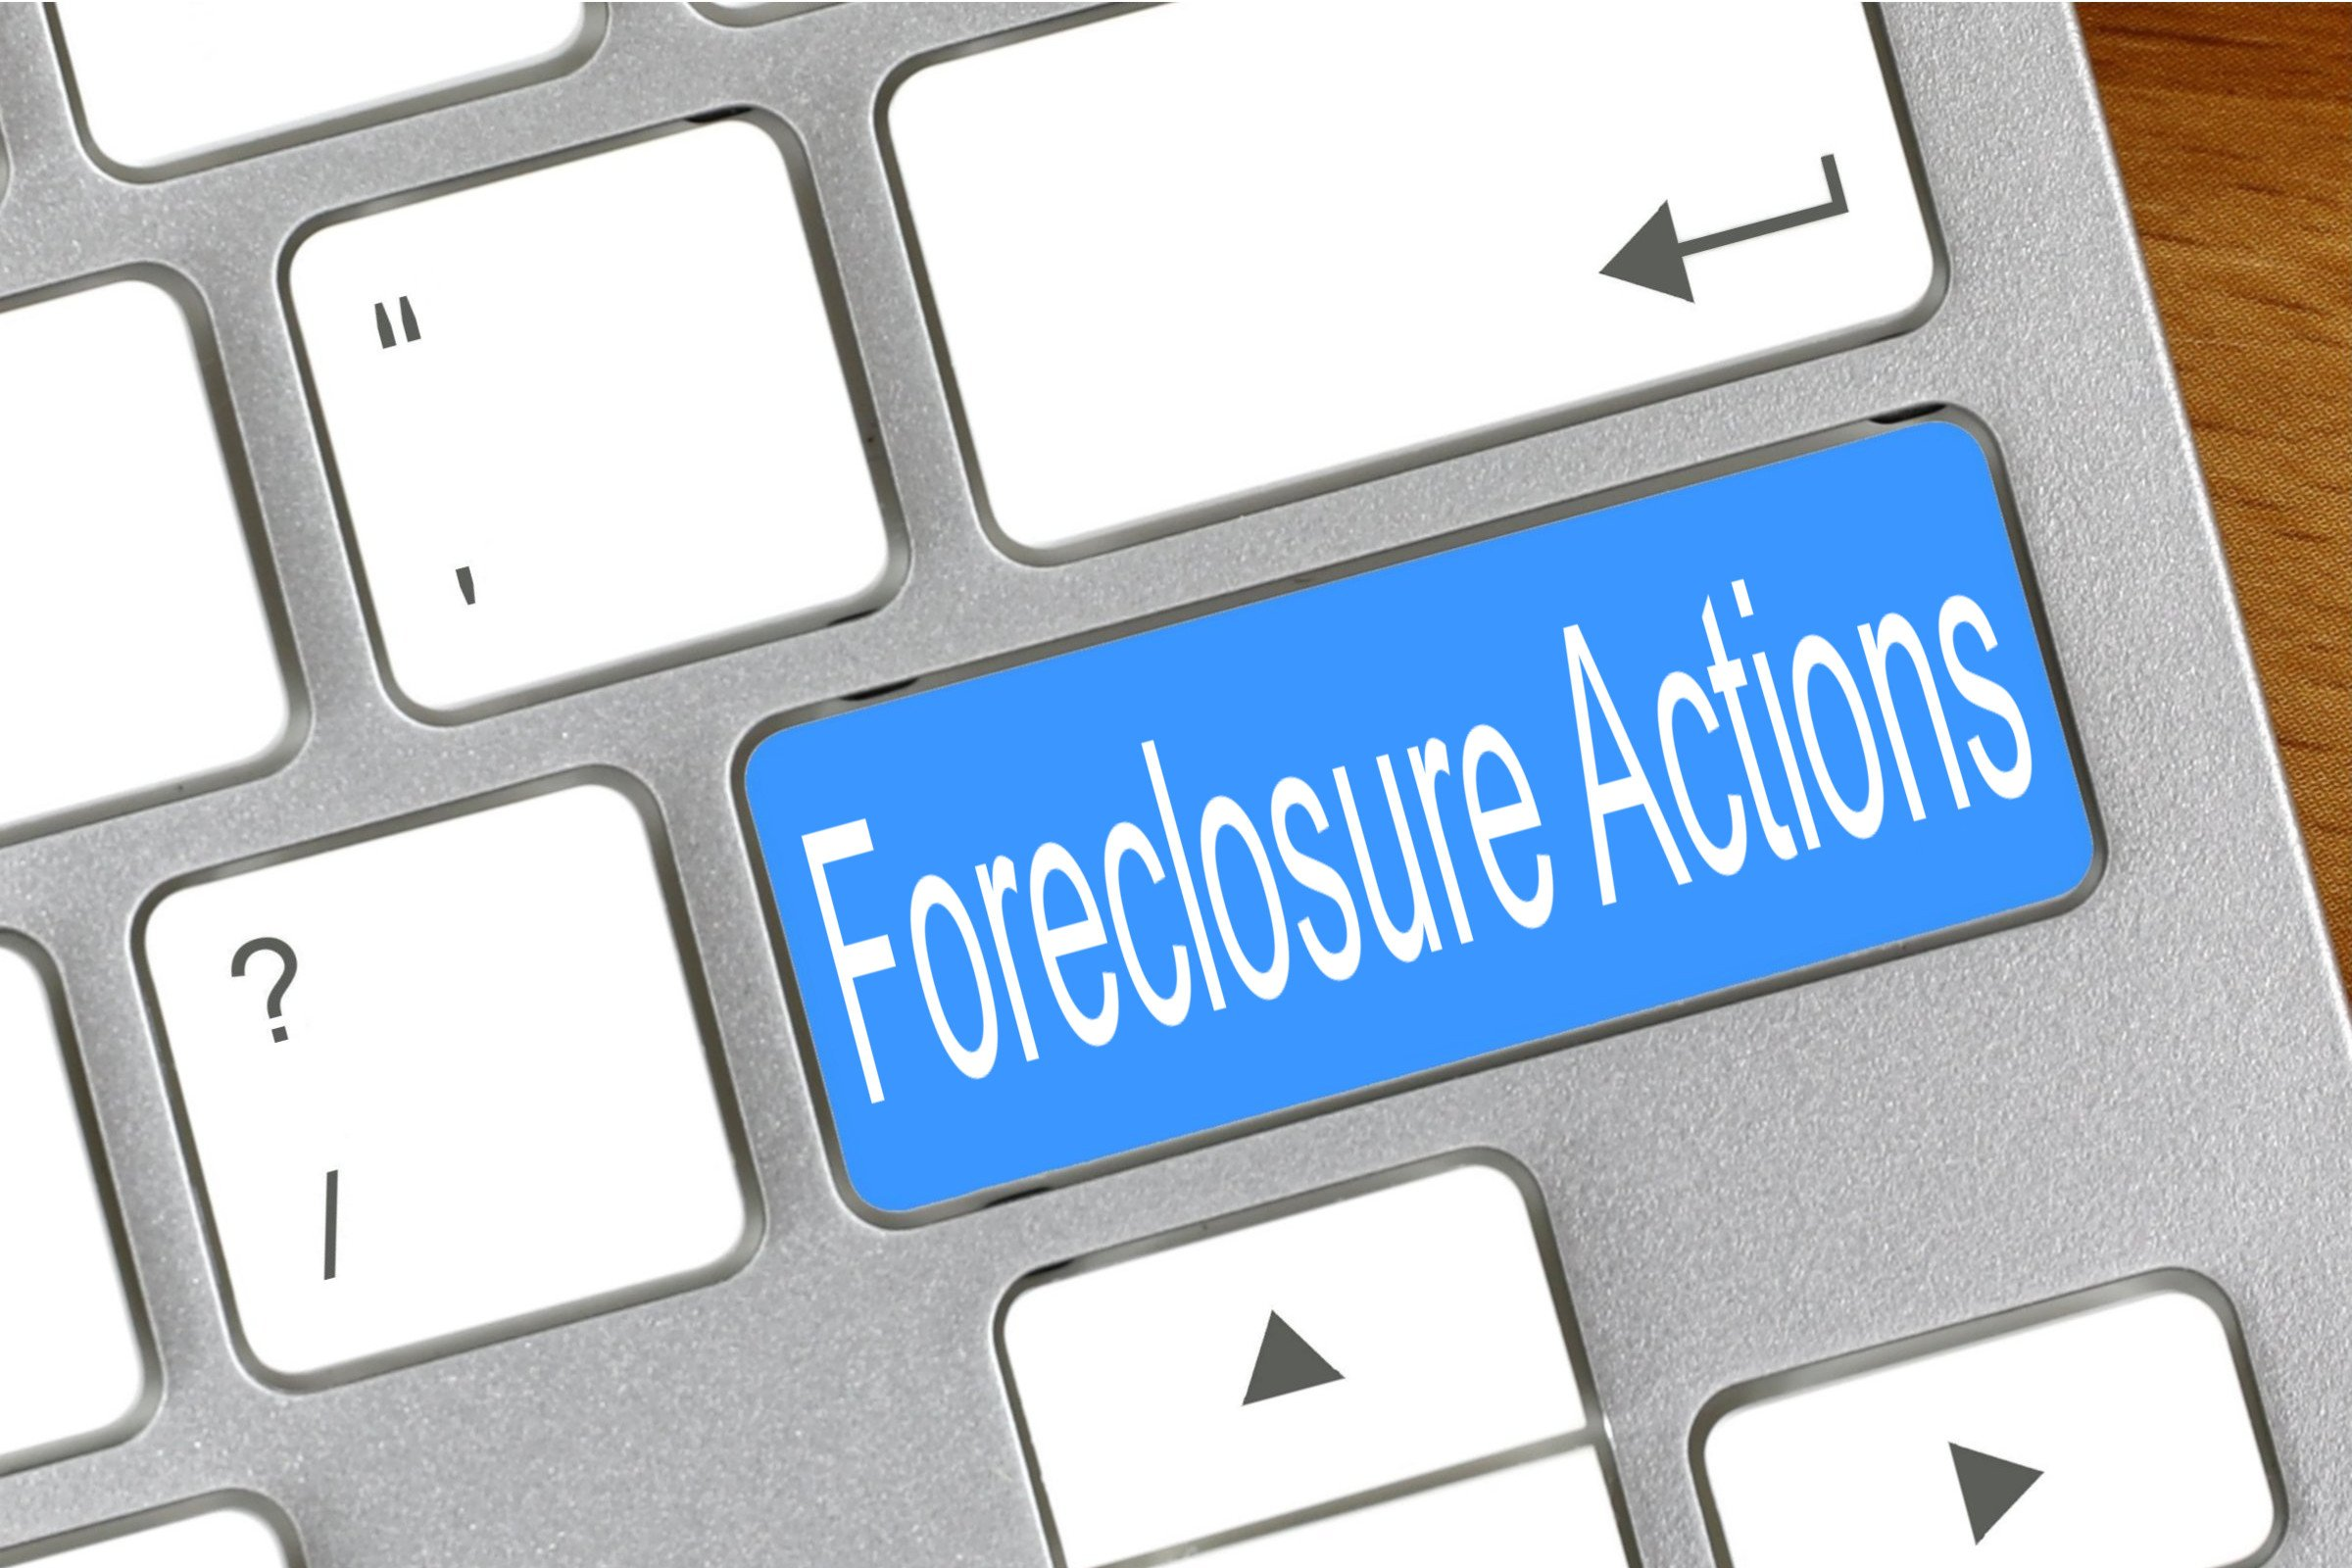 Foreclosure Actions